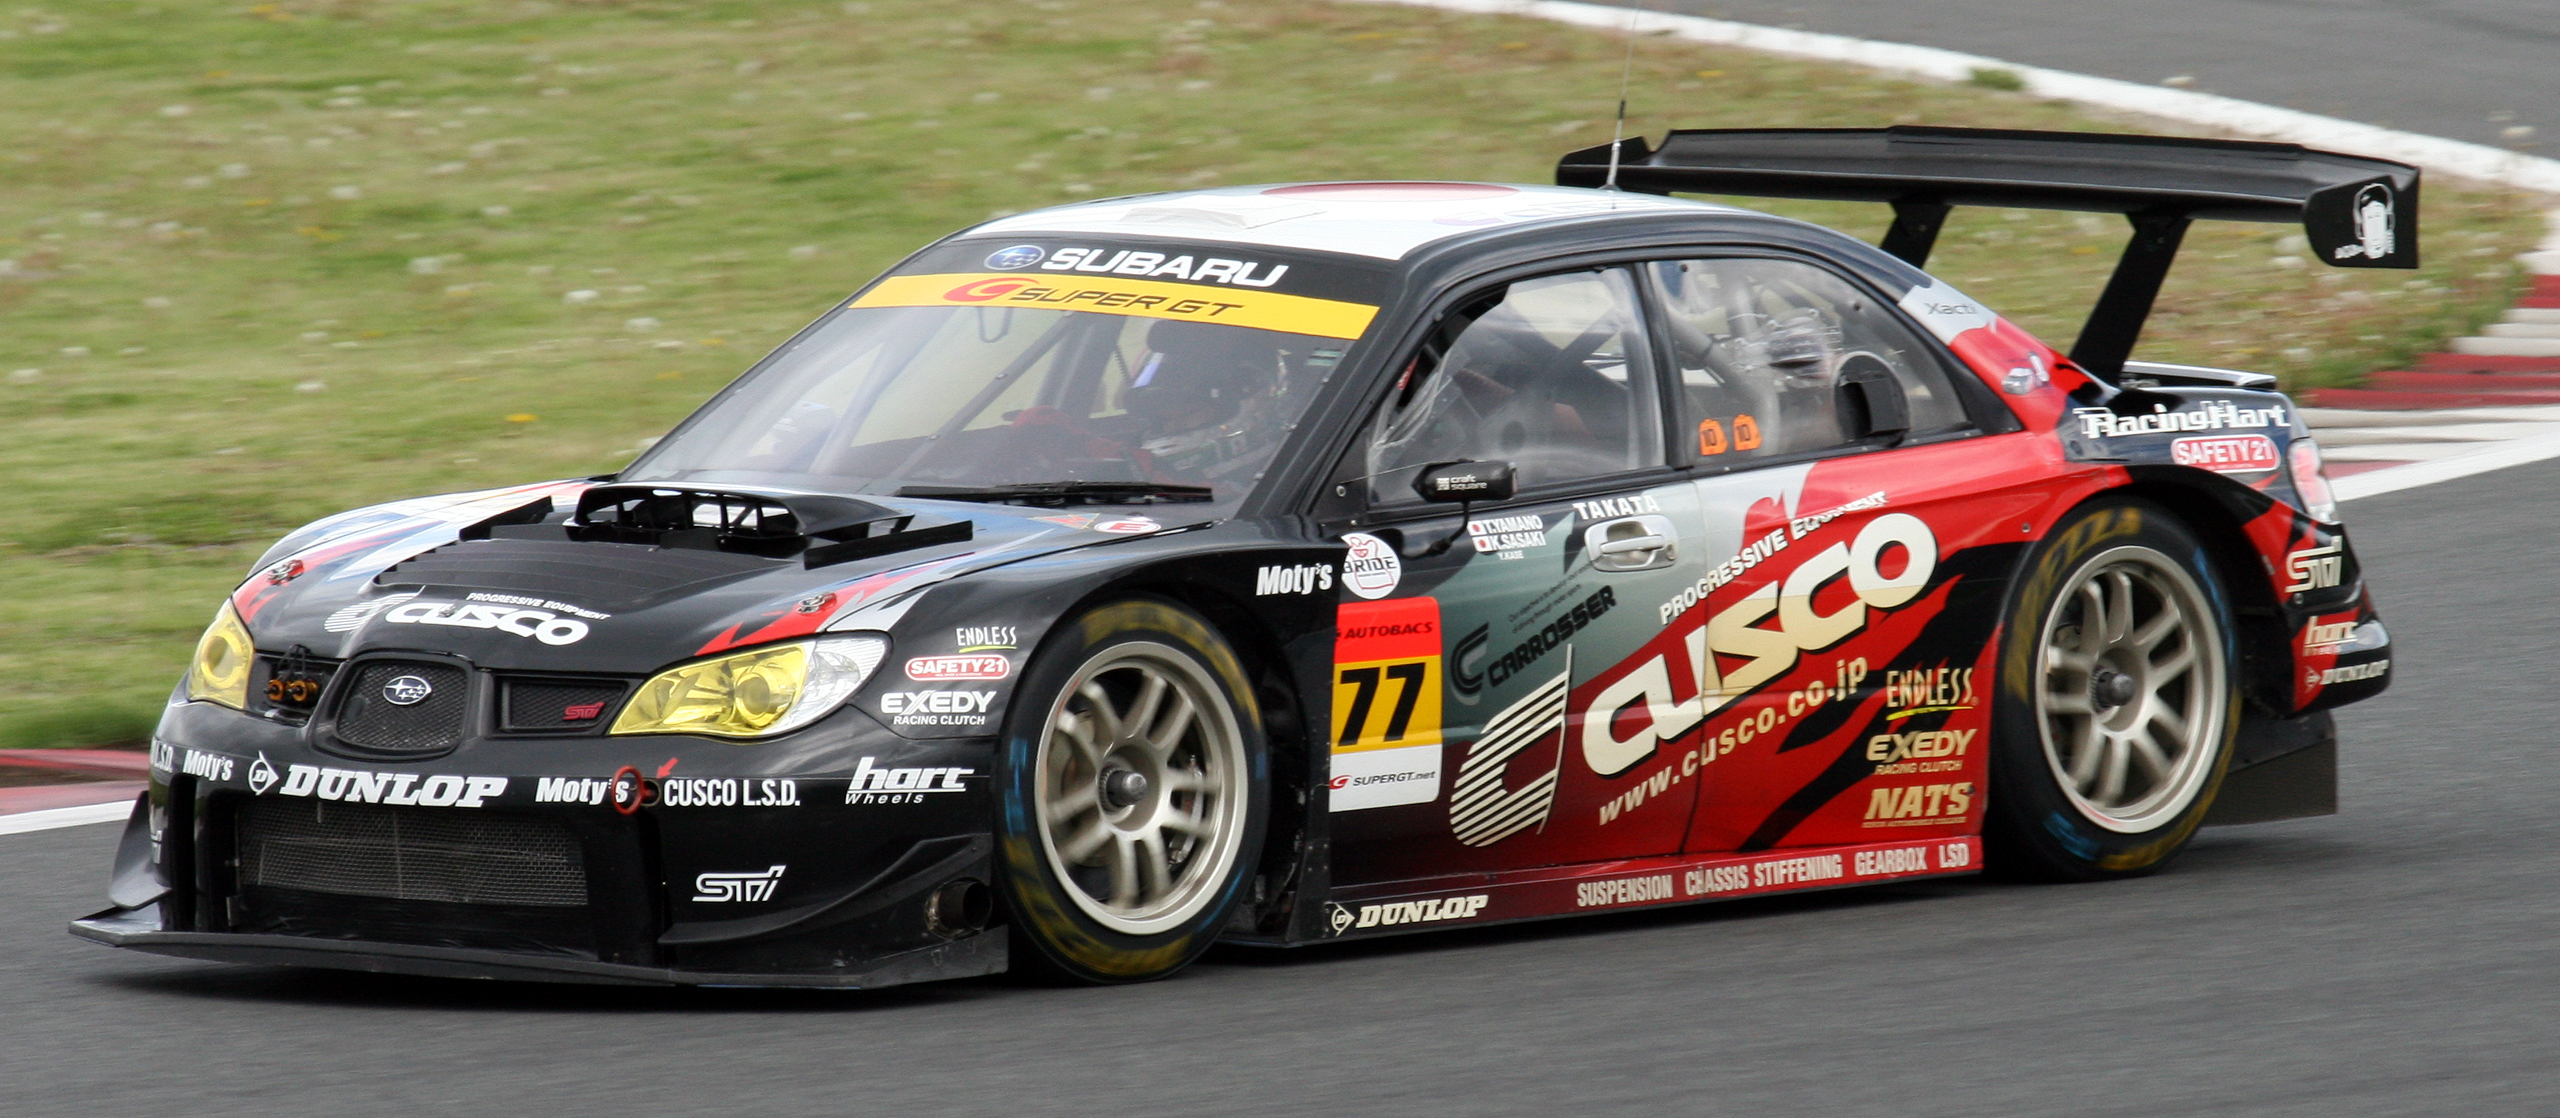 Cusco's Impreza in GT300